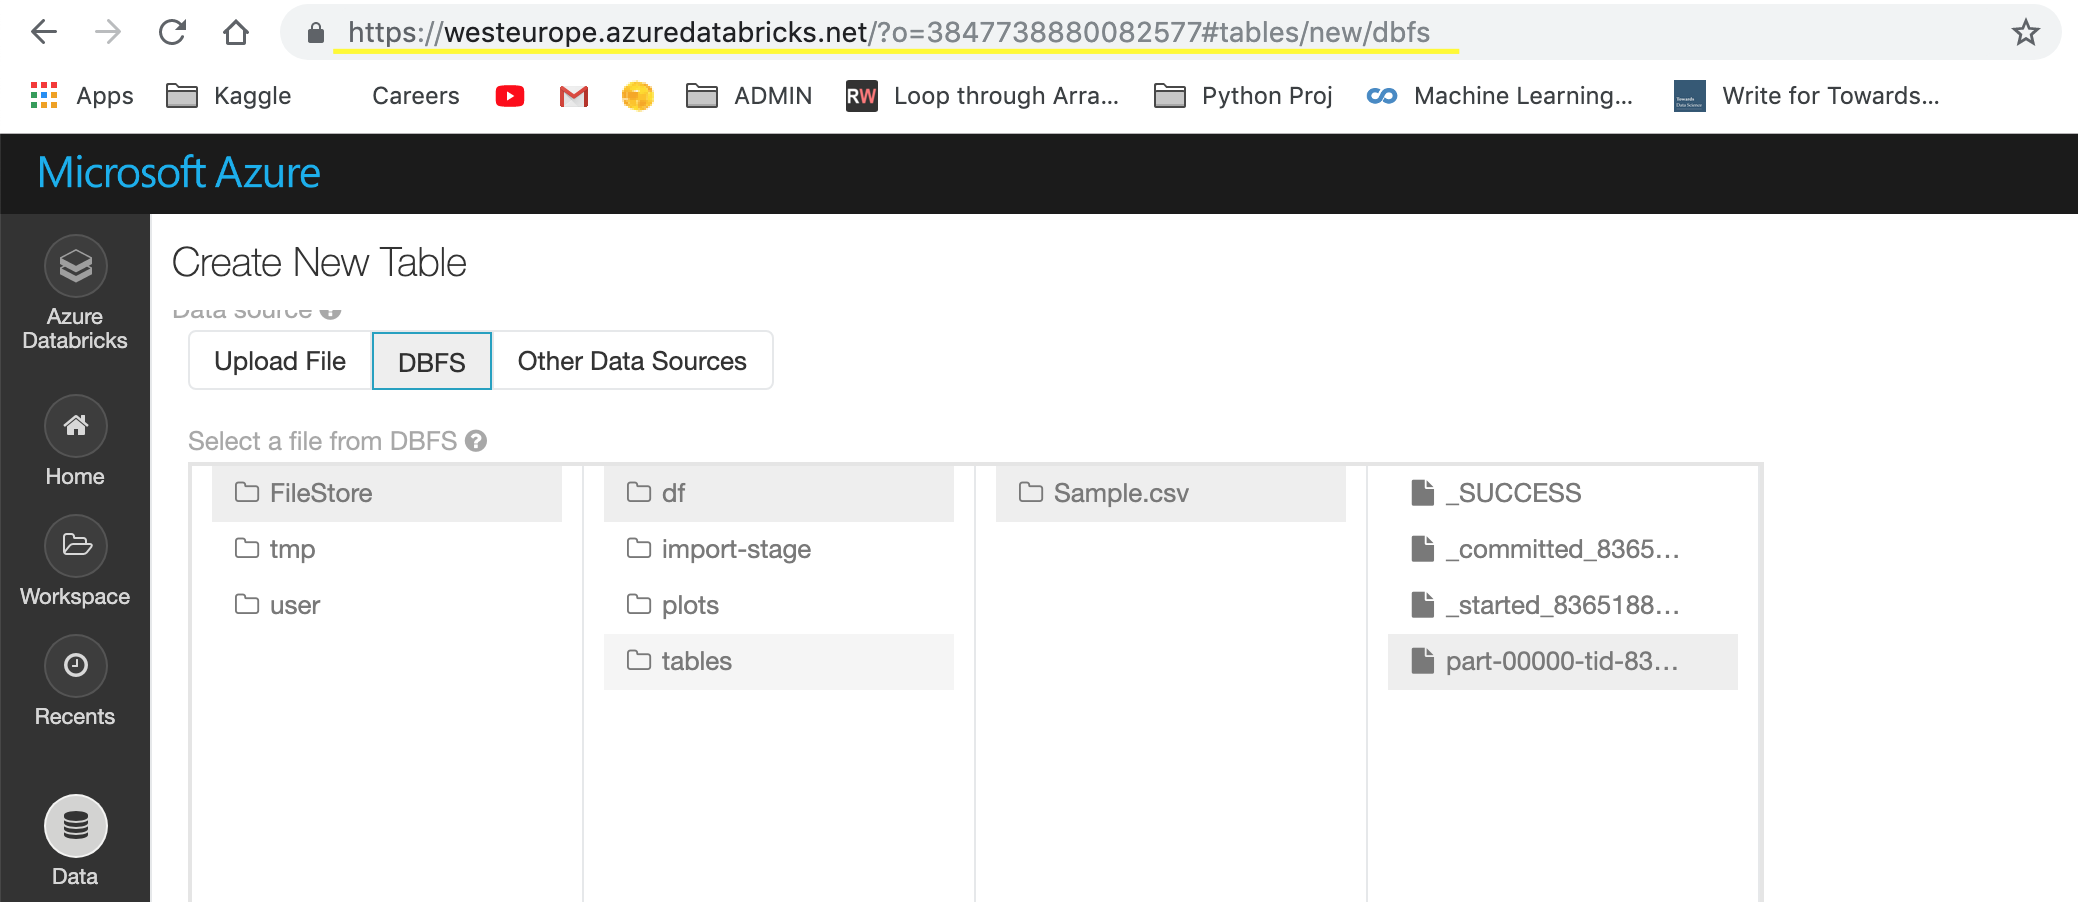 Databricks: How to Save Data Frames as CSV Files on Your